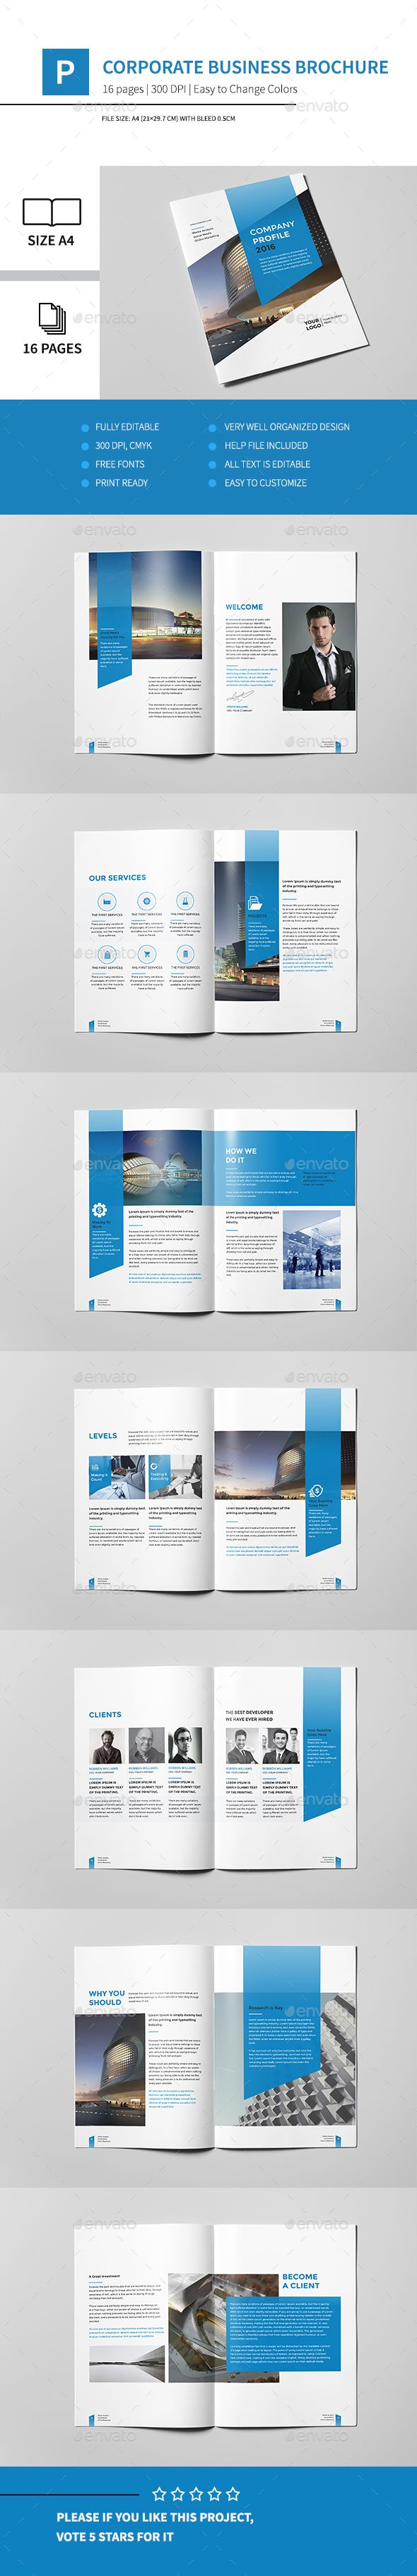 Corporate Business Brochure 16 Pages A4